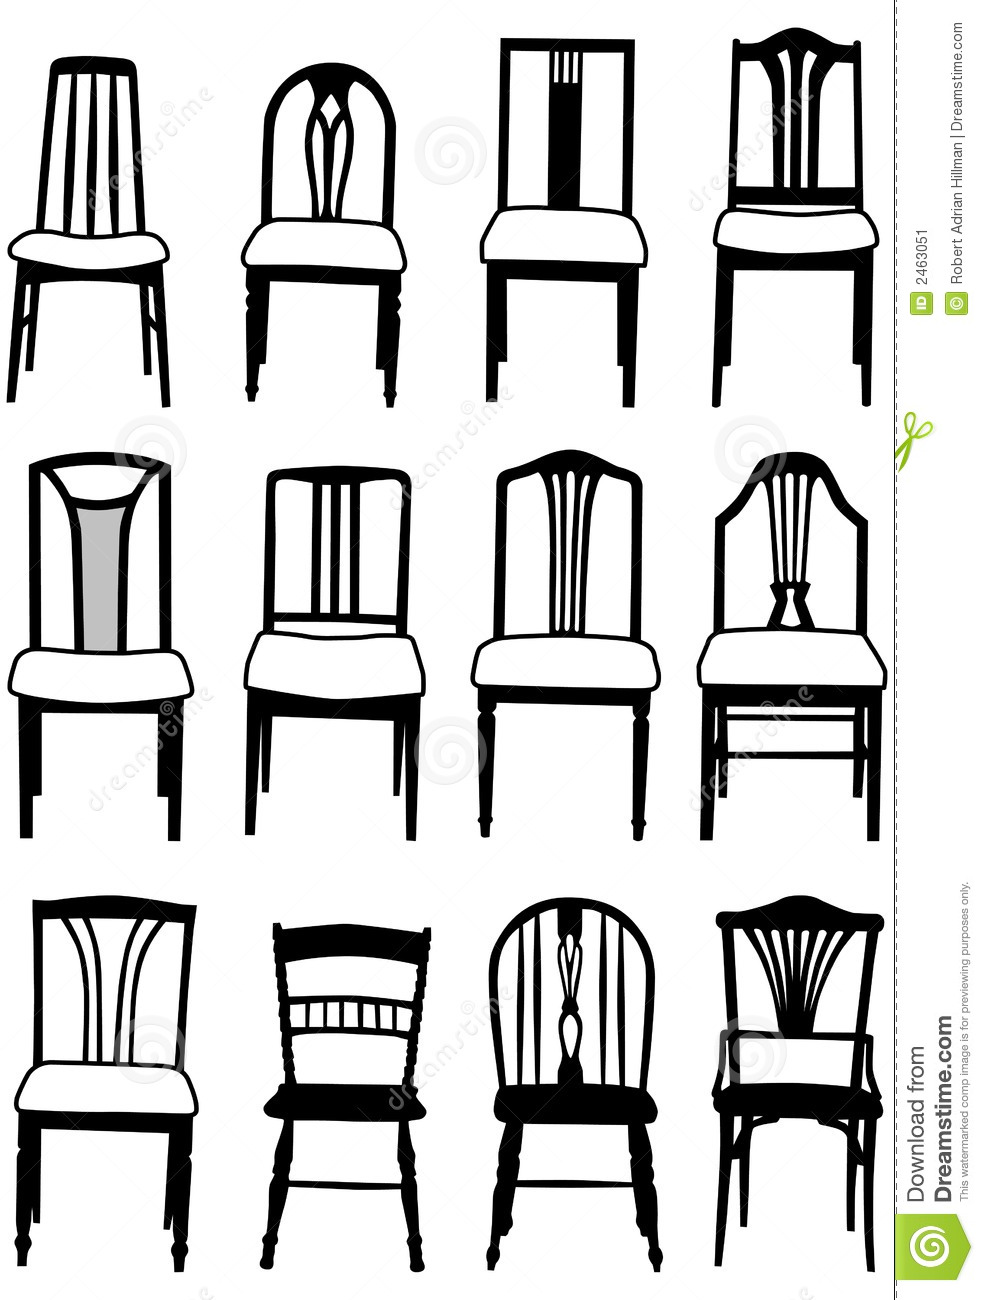 Dining chairs stock vector. Illustration of chair, collection